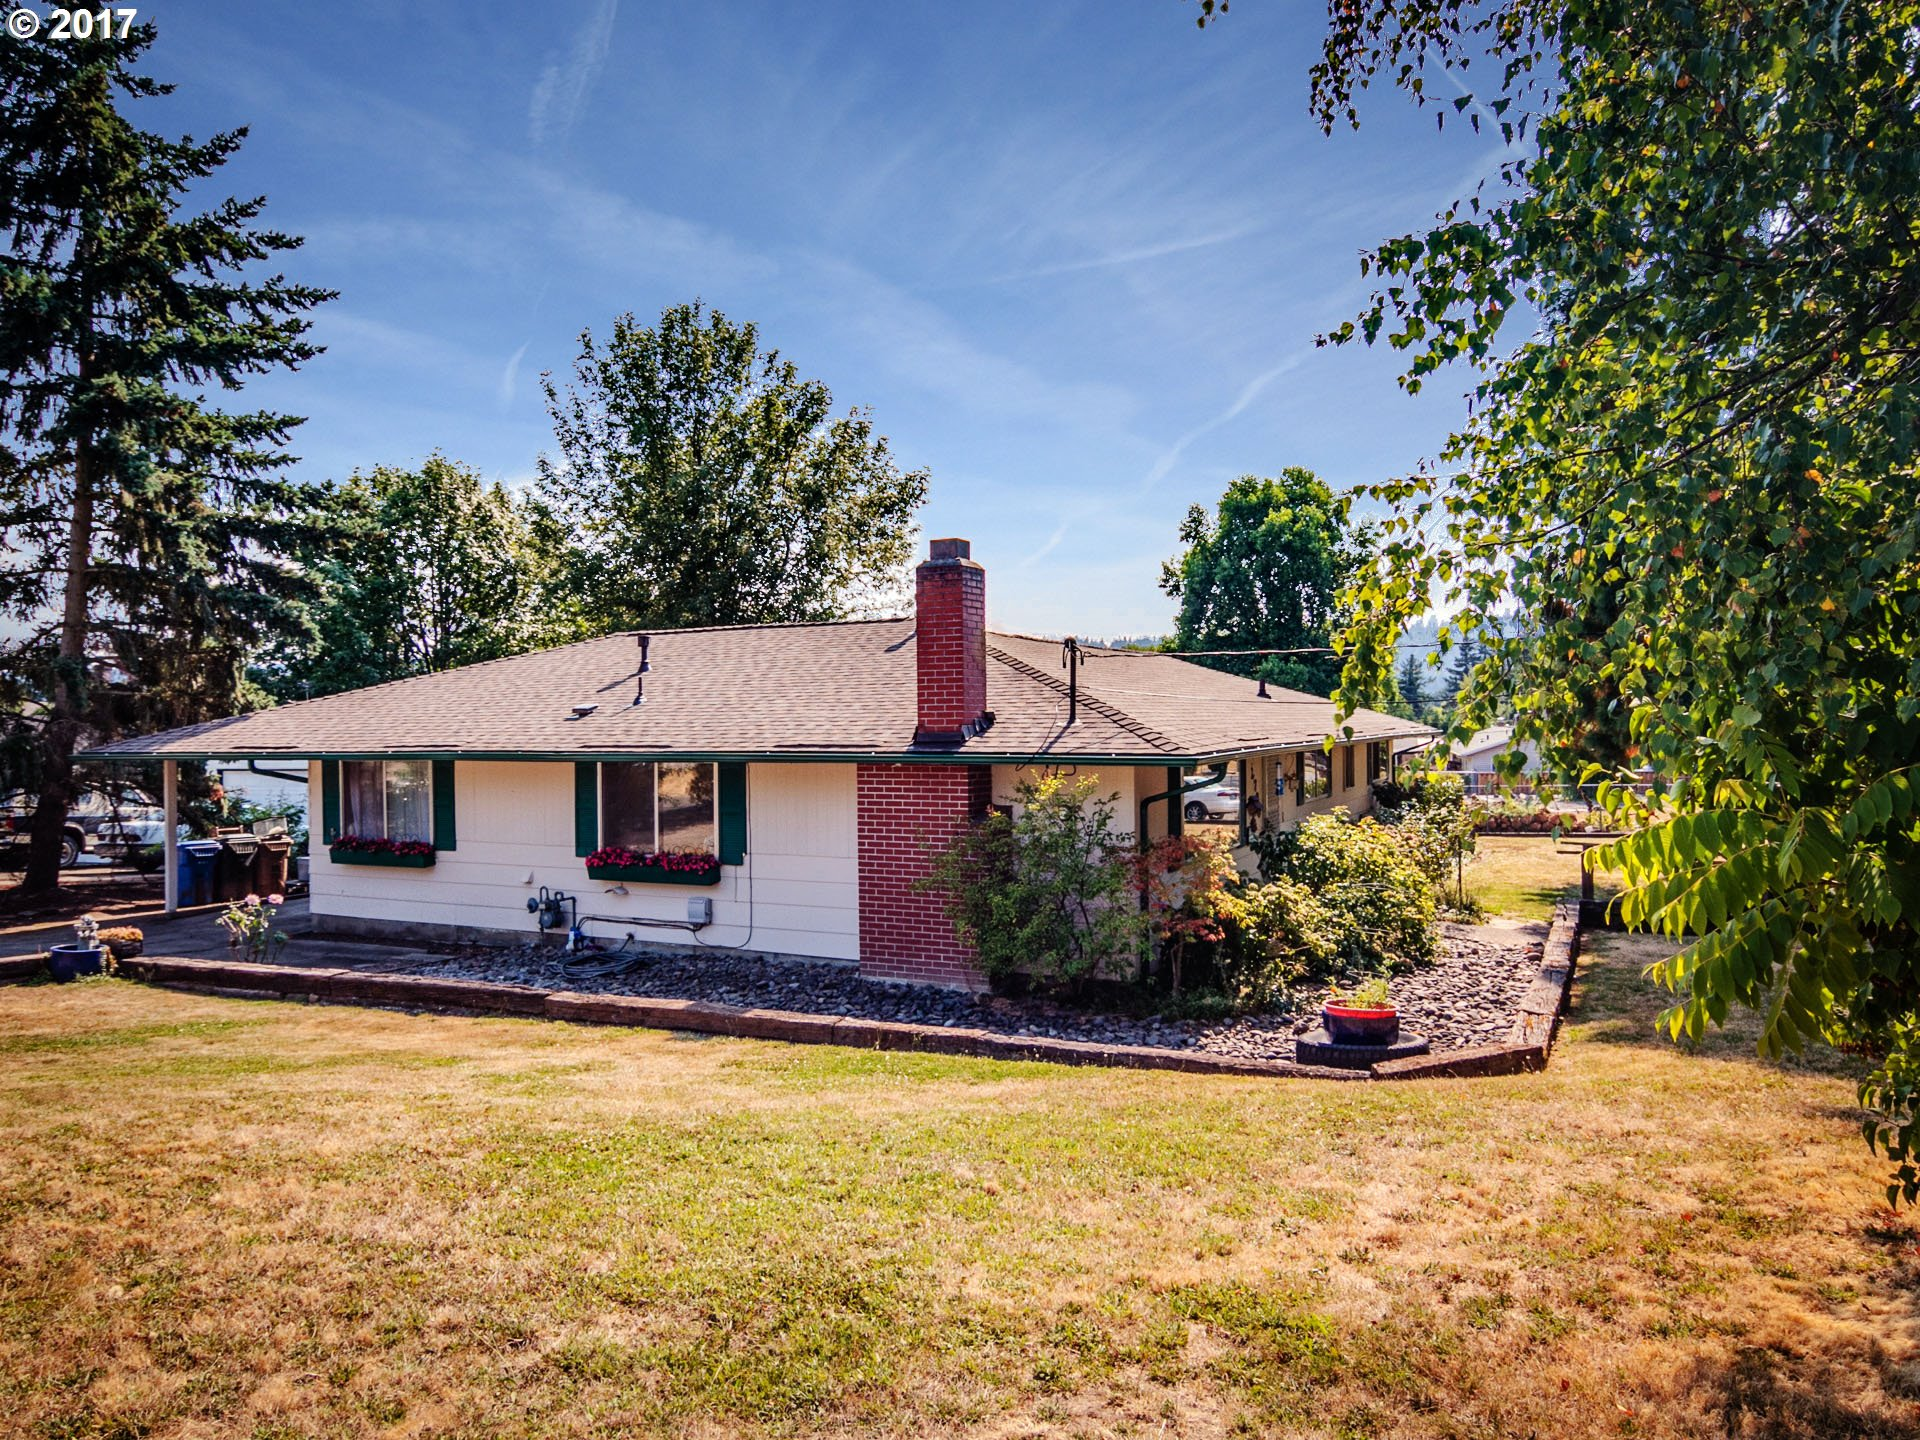 Remodeled 1904 sq. ft. Oak Grove Ranch on a Cul-de-sac! New roof and gutters 2017. Remodeled main bath and all new carpet 2017! Freshly painted interior. Potential for separate living quarters. Five bedrooms. Central Air! Big .23 acre fenced yard with mature trees, shed, deck and second driveway. Move-in-ready! A few blocks to Risely Park with playground, trails, sport court. A few blocks to McLoughlin shops and restaurants.